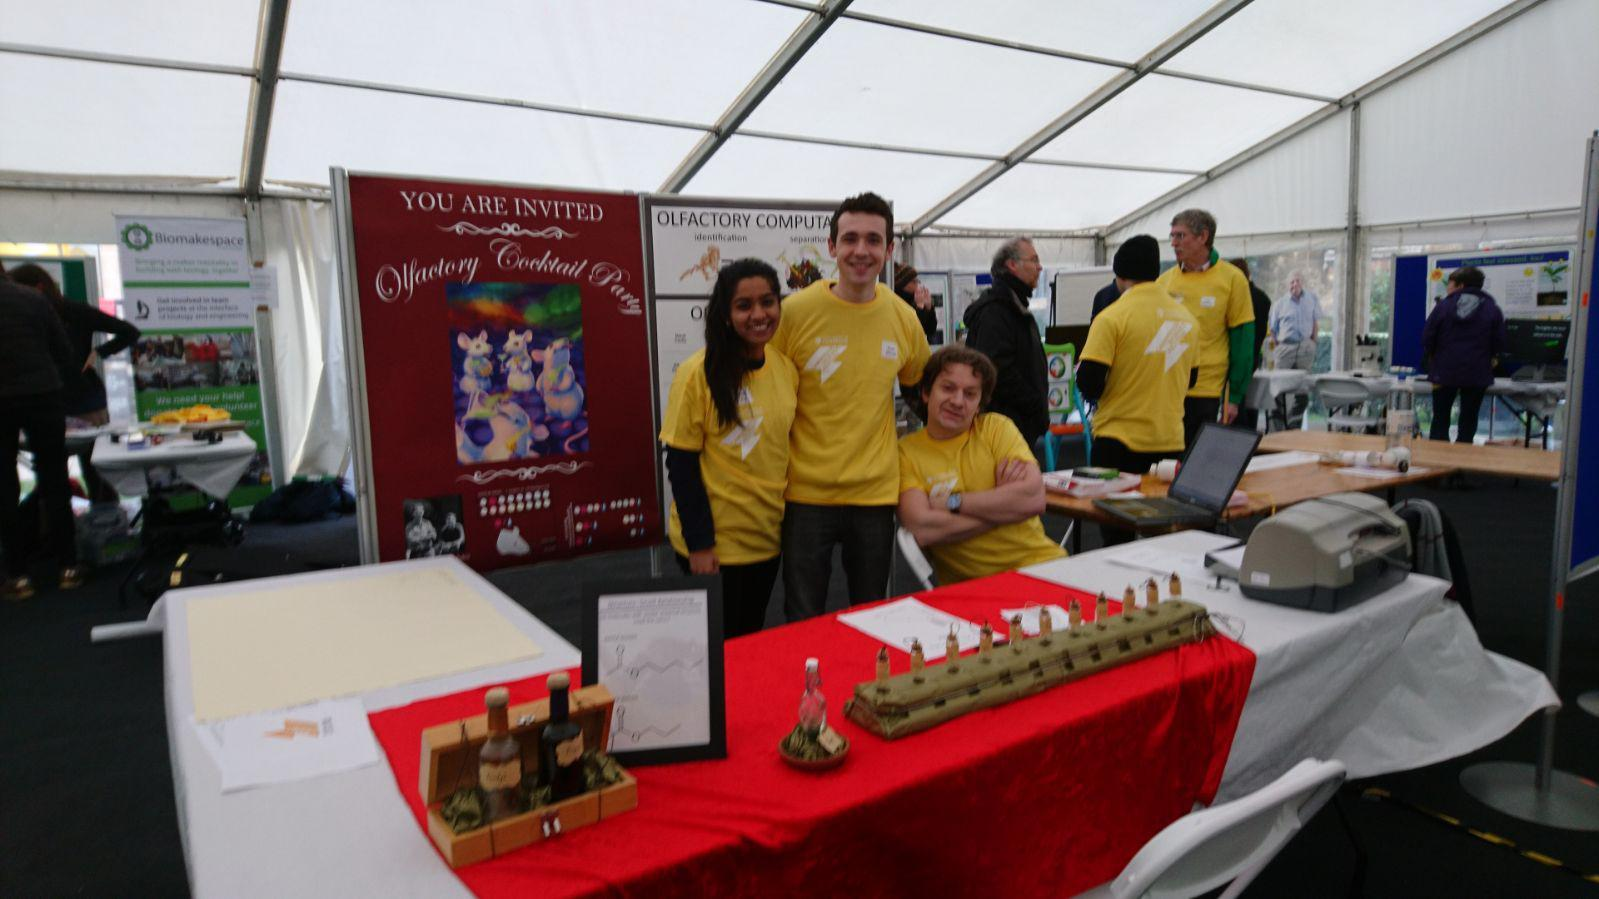 The lab throwing an olfactory cocktail party at Cambridge Science week 2018.